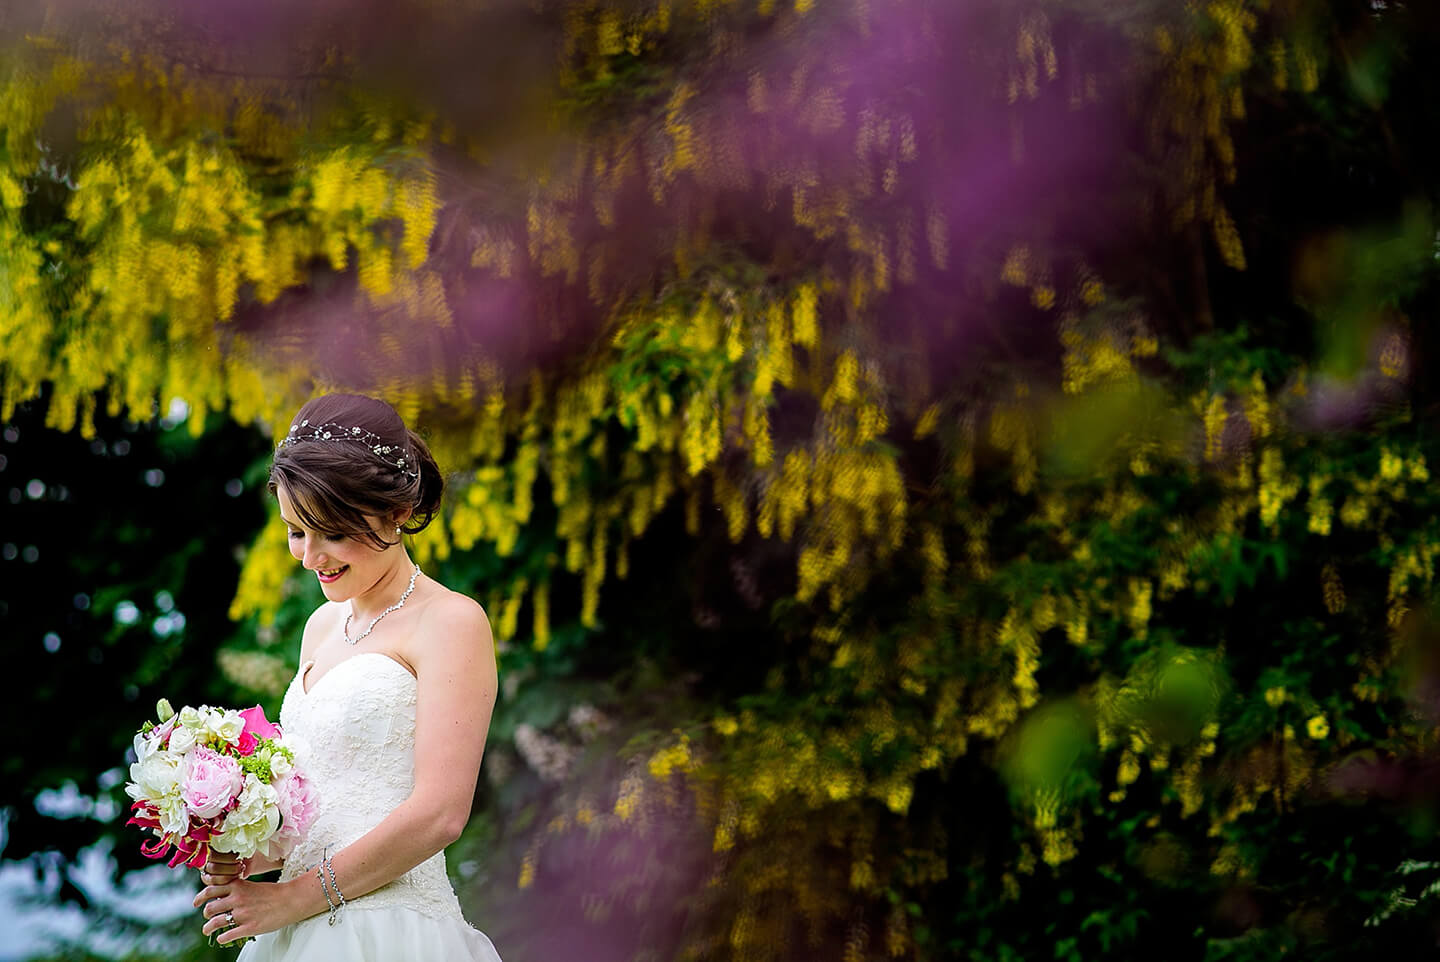 Bride stands in the grounds holding a wedding bouquet of pink flowers – wedding ideas